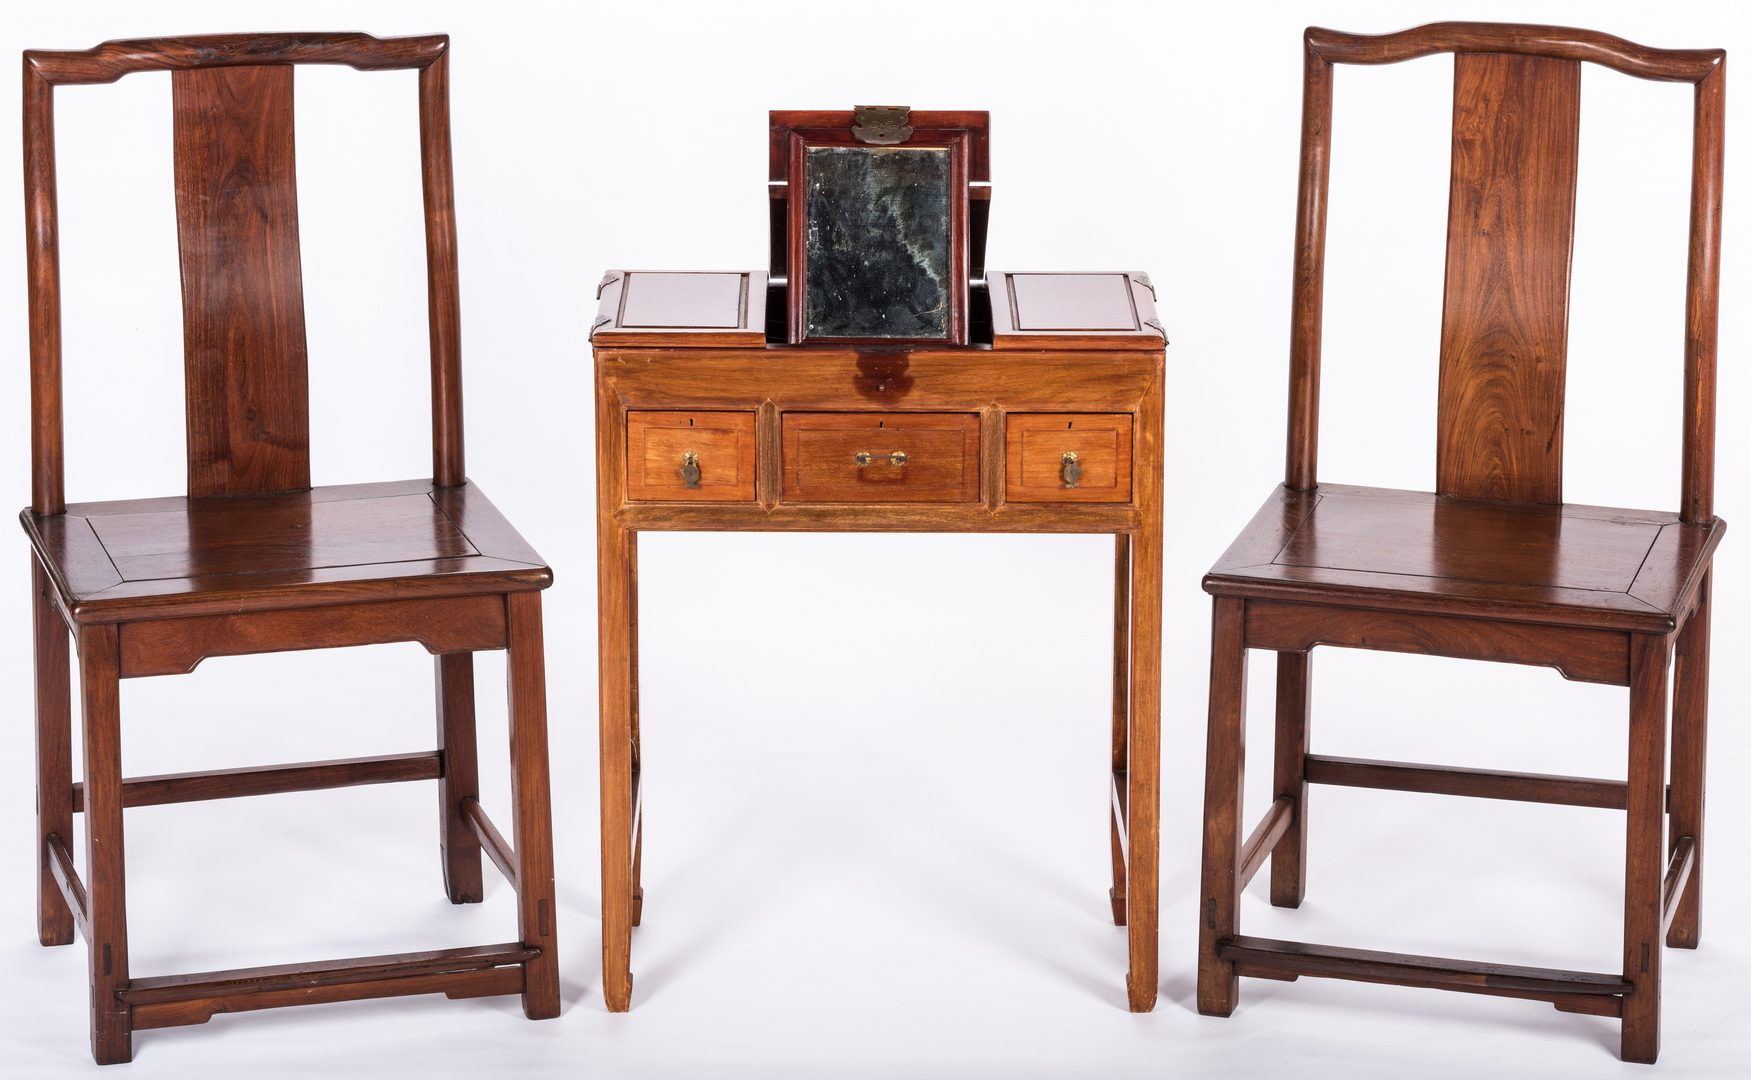 Lot 364: Chinese Dressing Table & 2 Chinese Side Chairs, 3 items